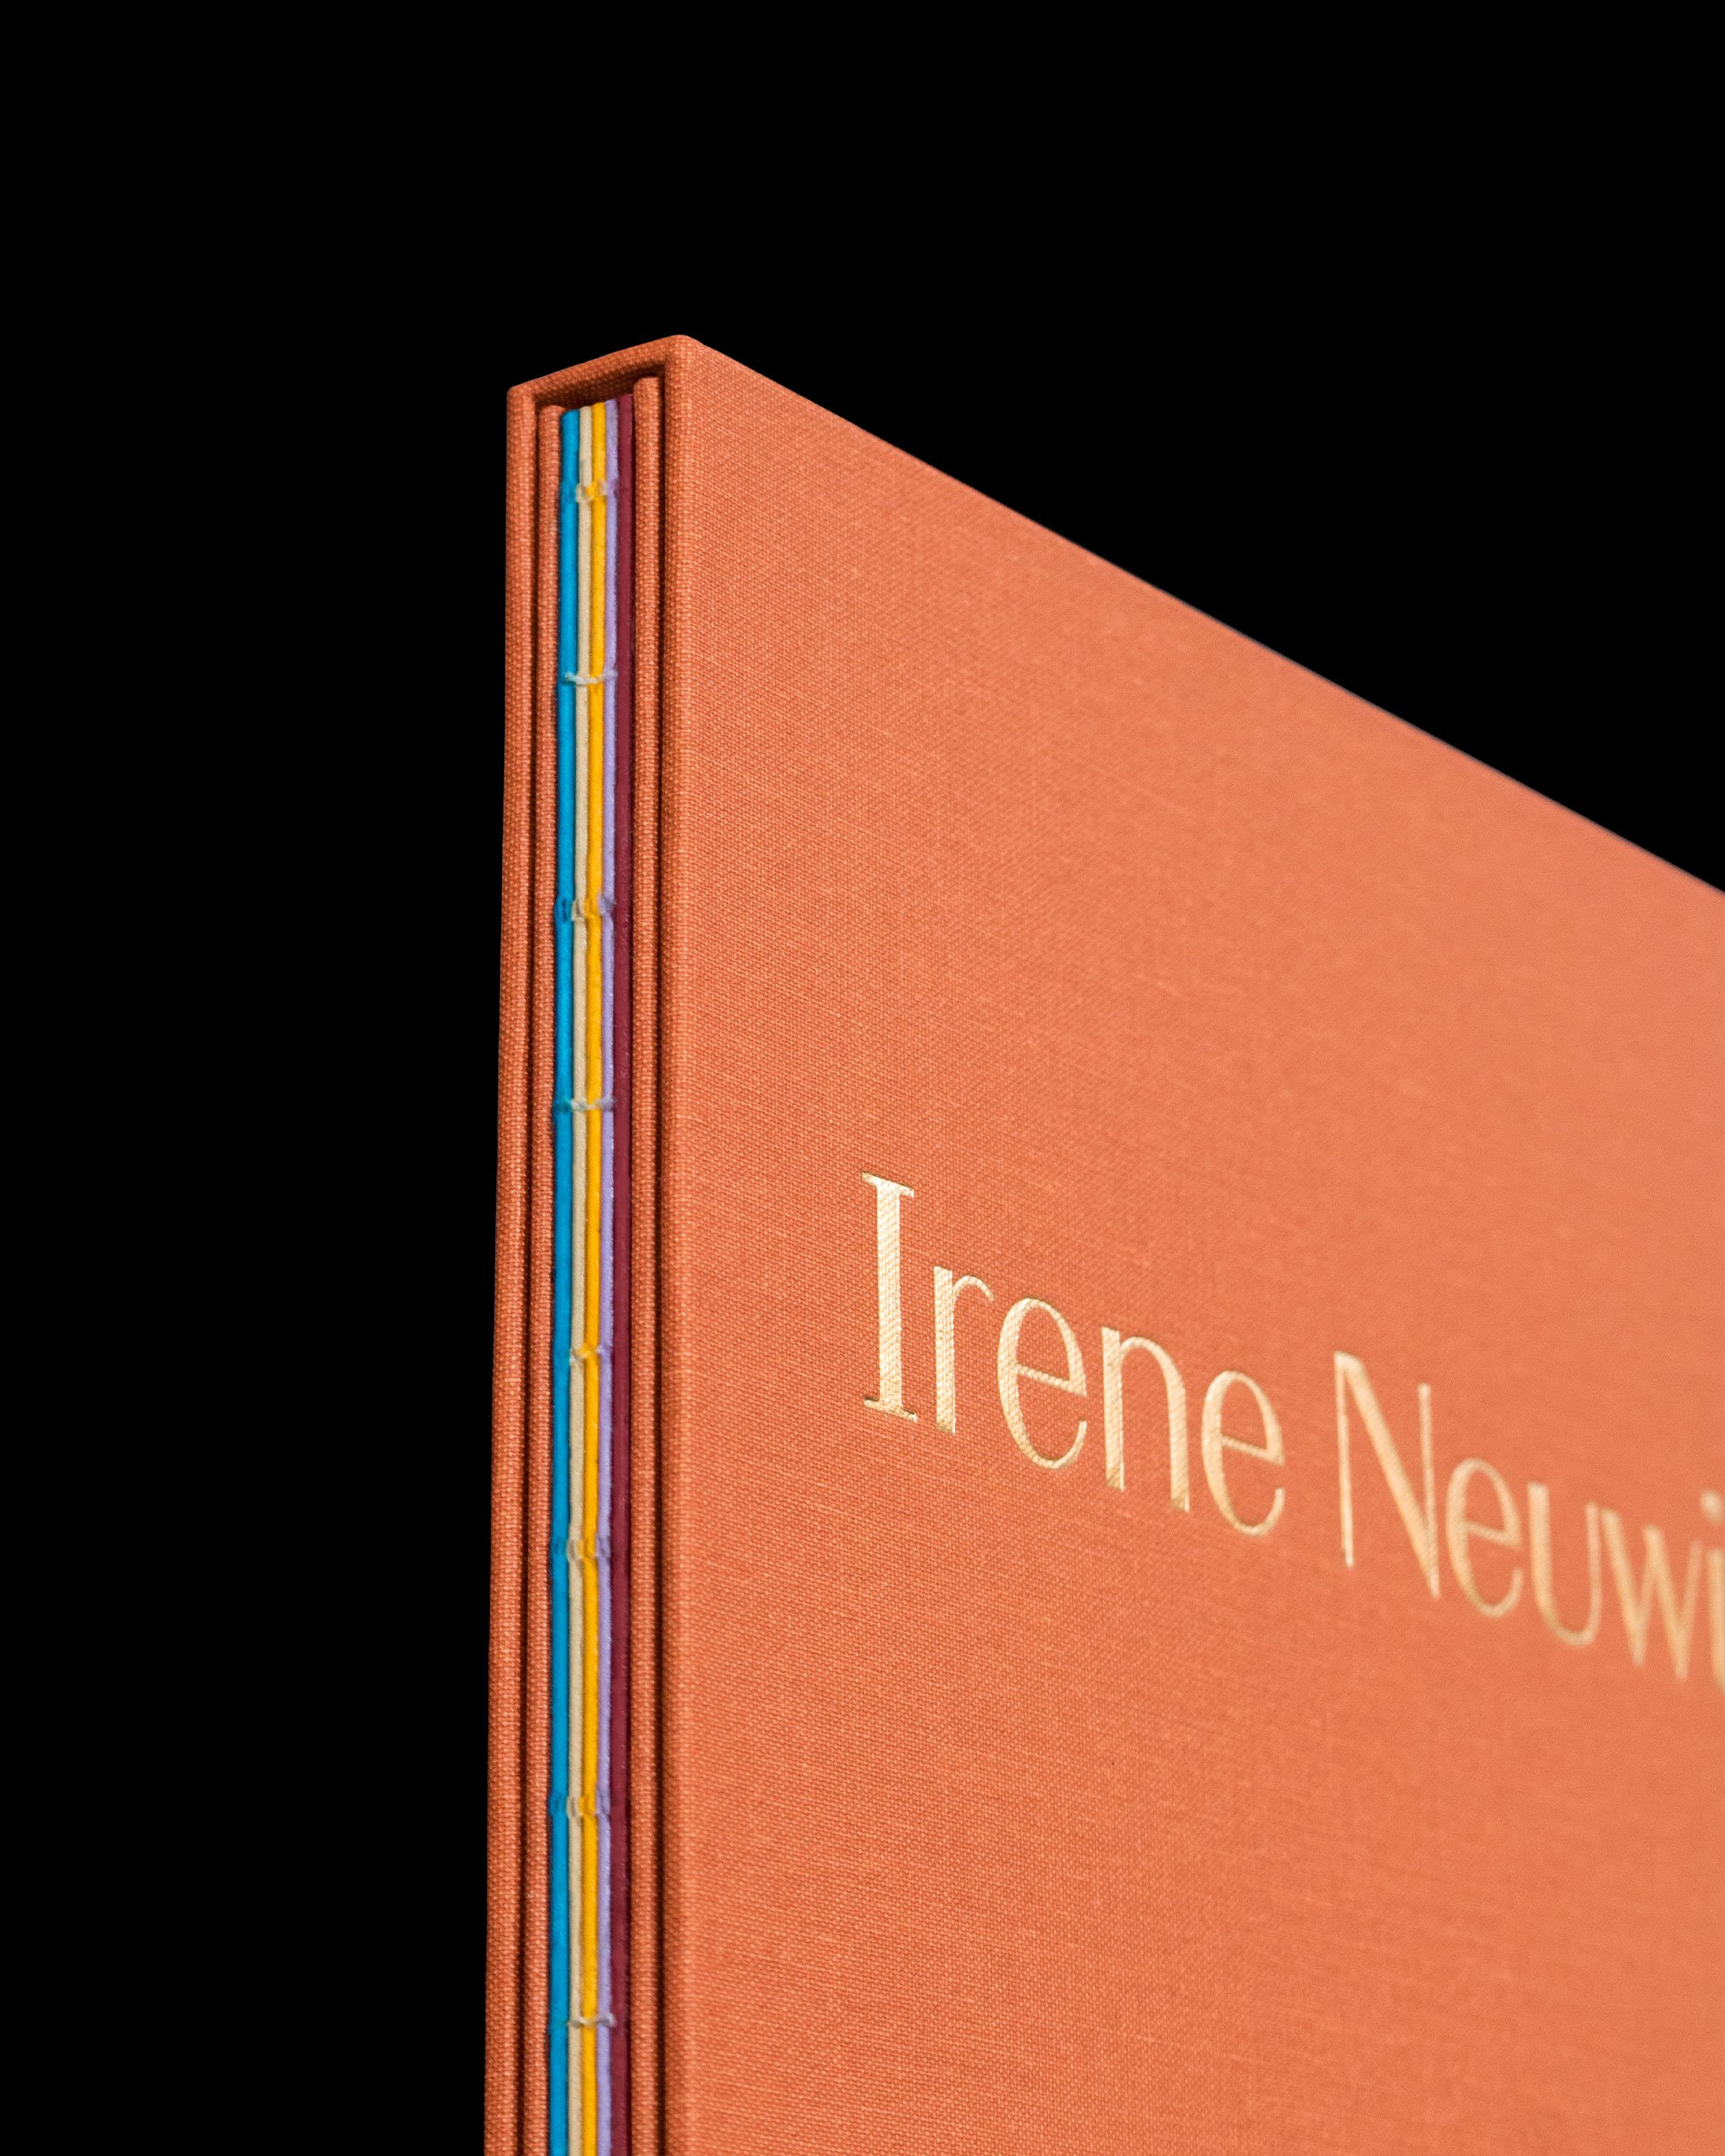 Irene Neuwirth brand book. Linen-bound, gold stamped, published by Proof 7. Art direction and print design by RoAndCo